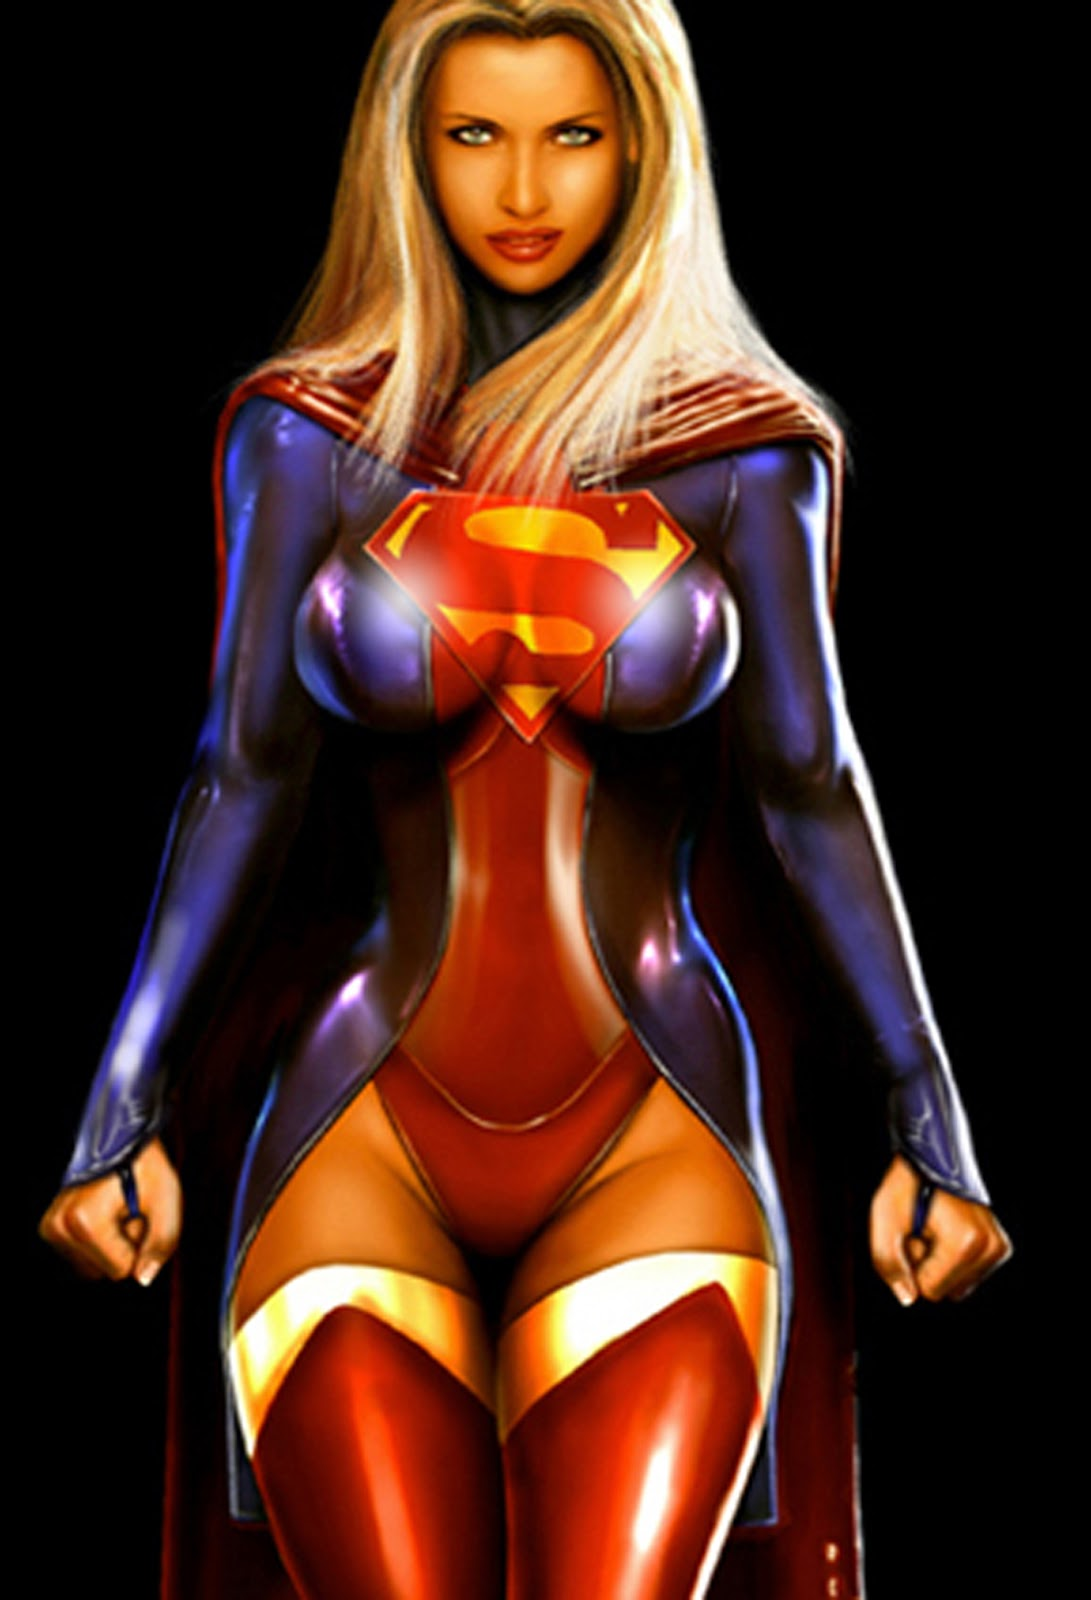 Female Superheroes Nude